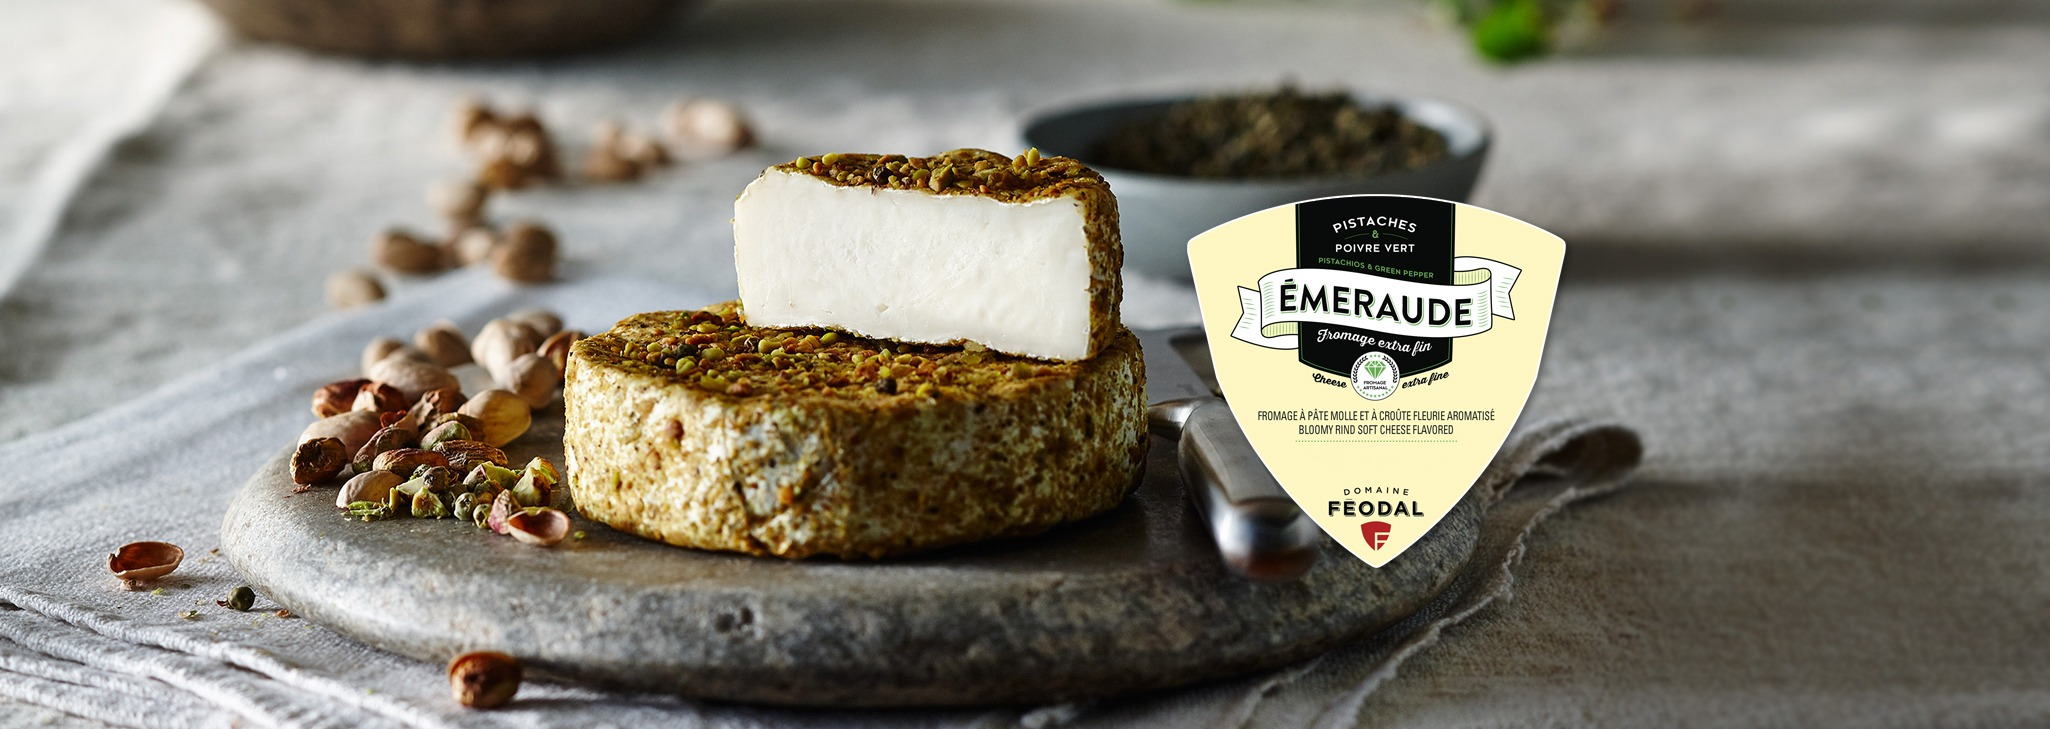 emeraude-fromage